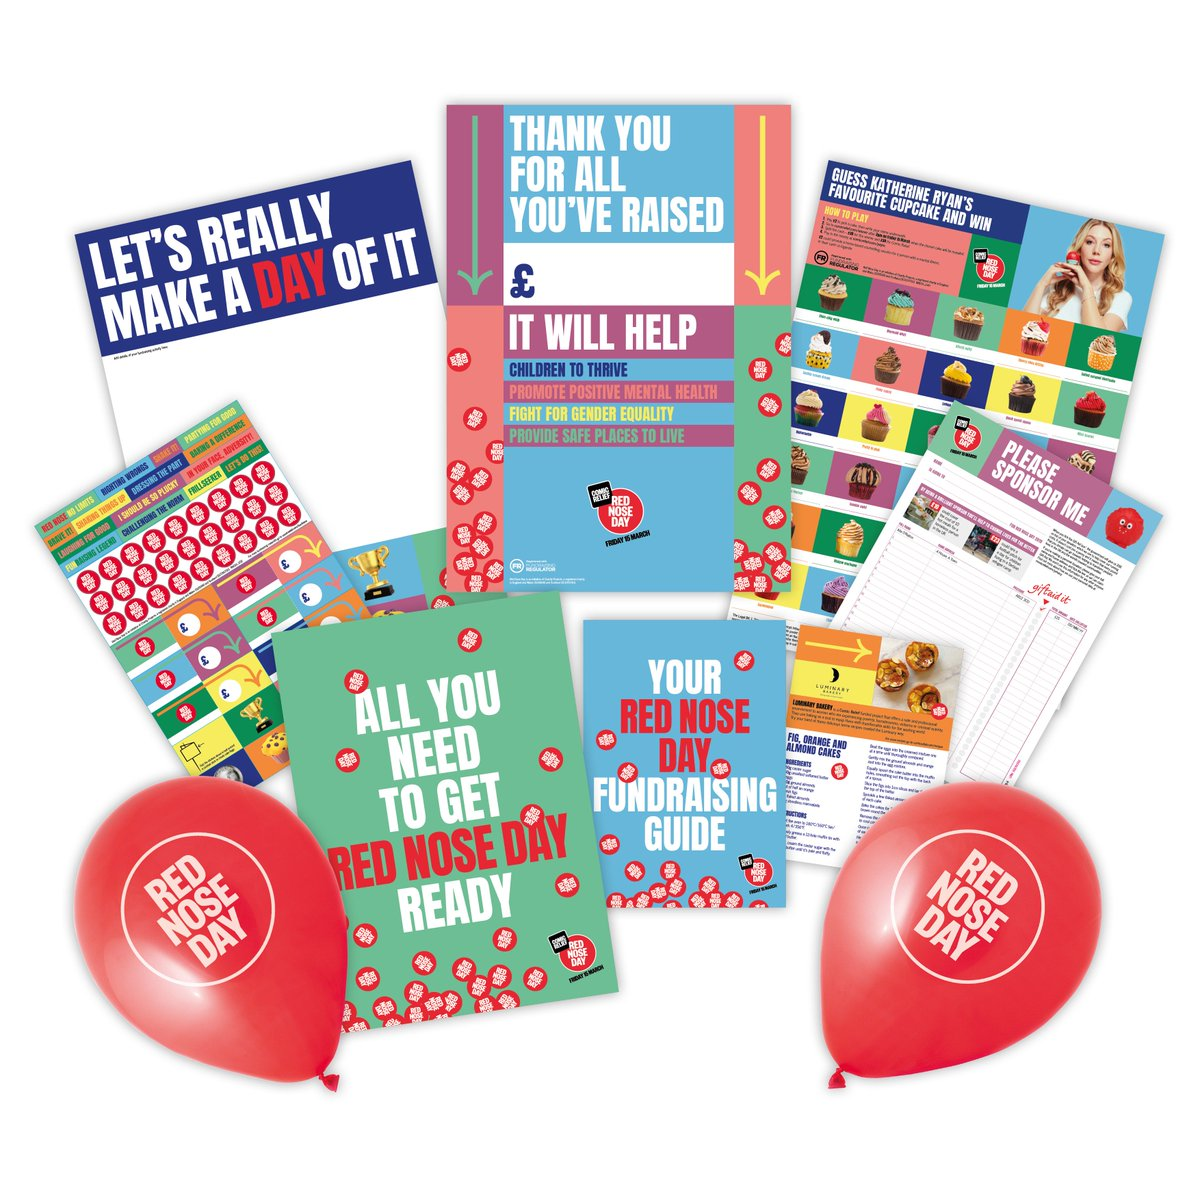 5 wildlife-killing balloons in every free @ComicRelief fundraising pack + option to buy more. Plastic pollution on a monumental scale and an embarrassing lack of environmental awareness from an organisation that should know better  https:// shop.comicrelief.com/categories/fun draising-packs &nbsp; …  #RedFaceDay #RedNoseDay<br>http://pic.twitter.com/s0VUla89SG